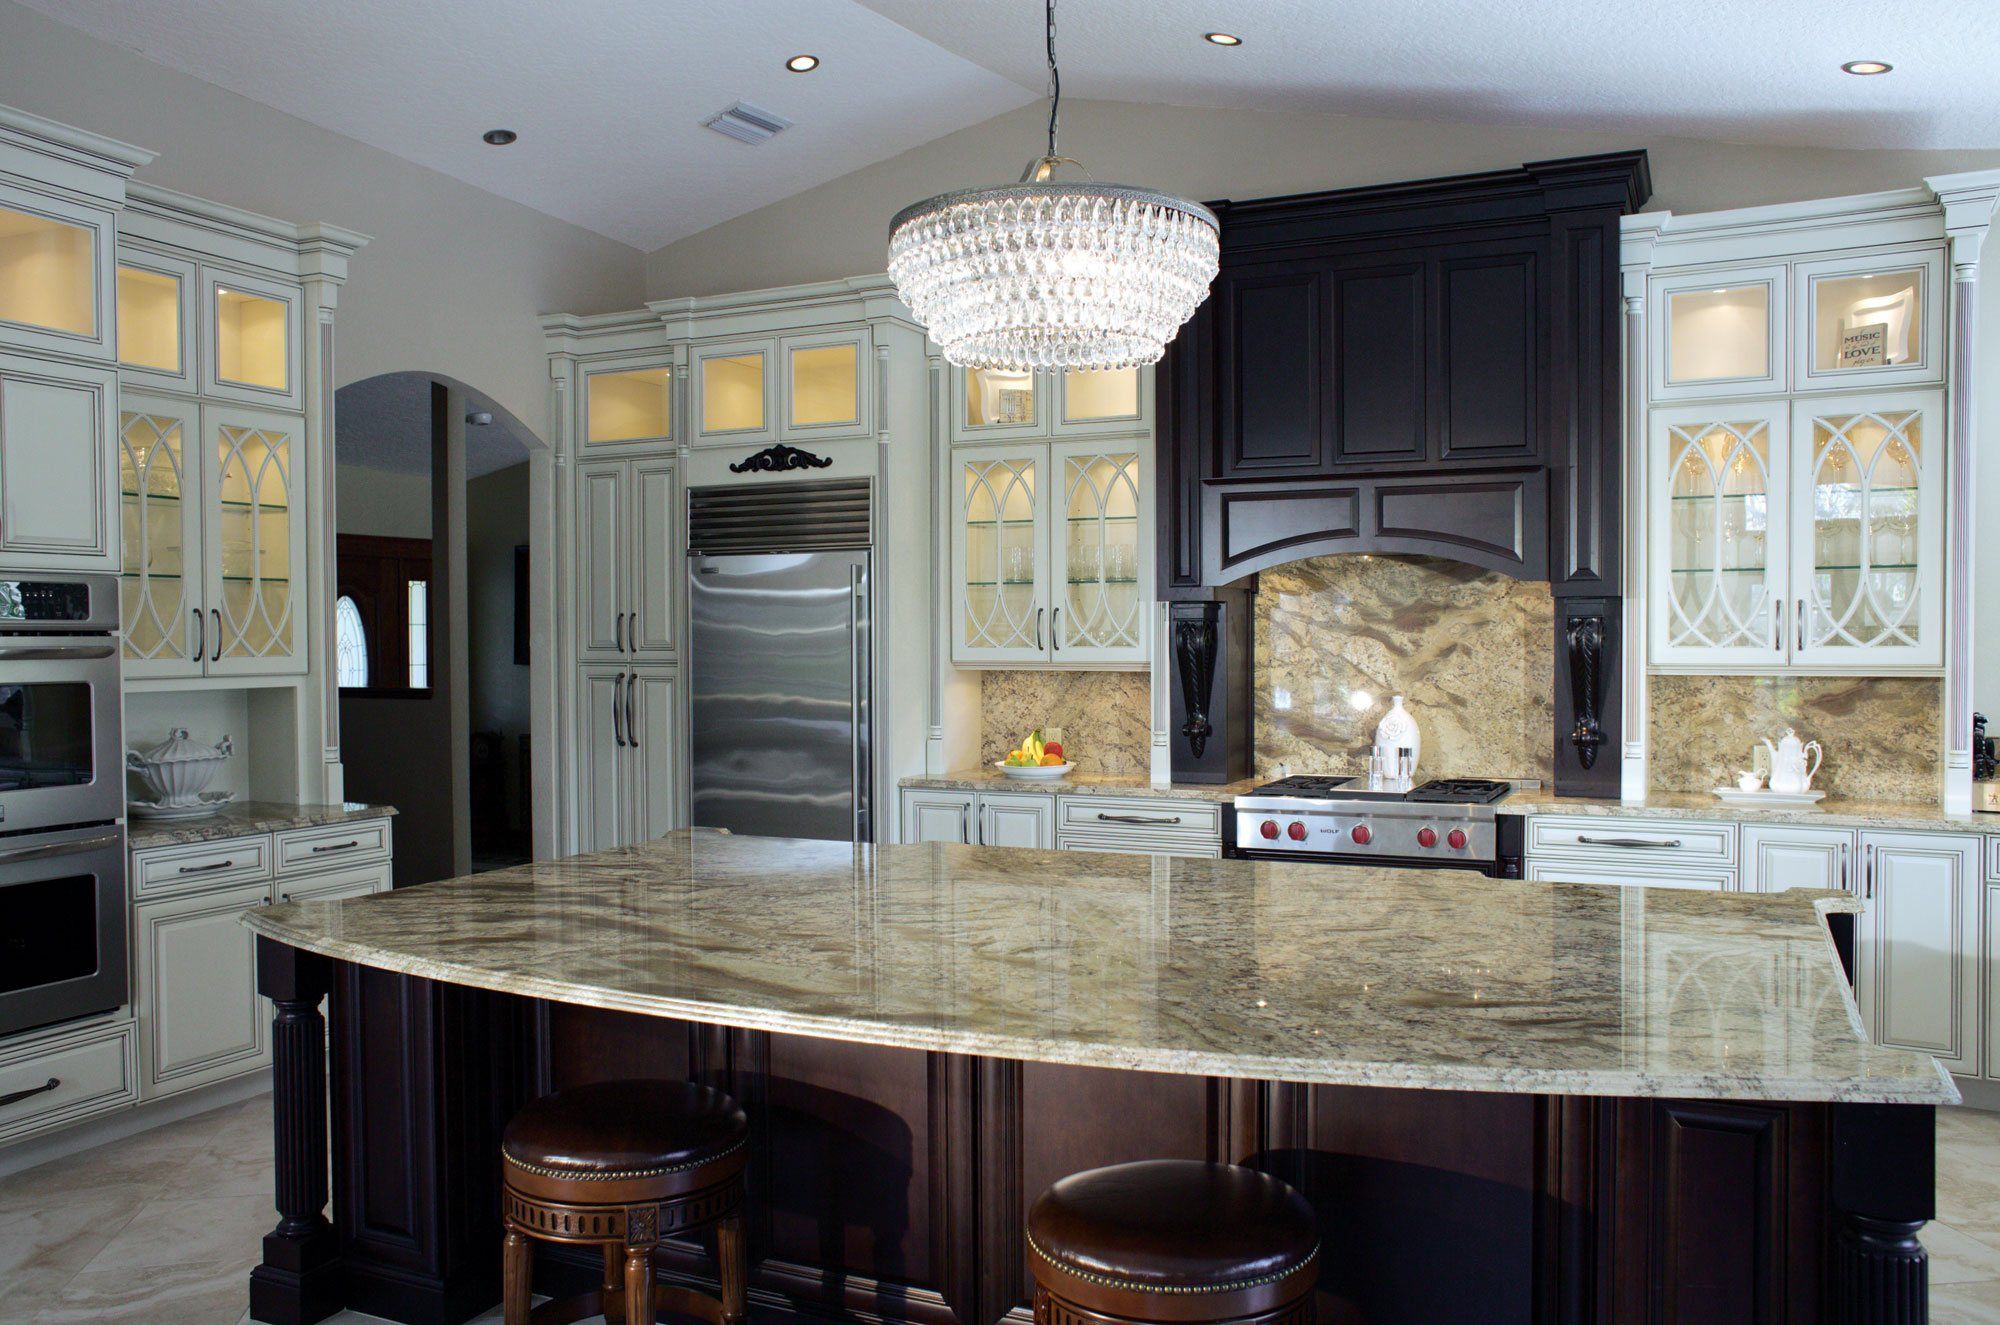 Kitchen and Bath Remodel Melbourne FL custom cabinets and countertops